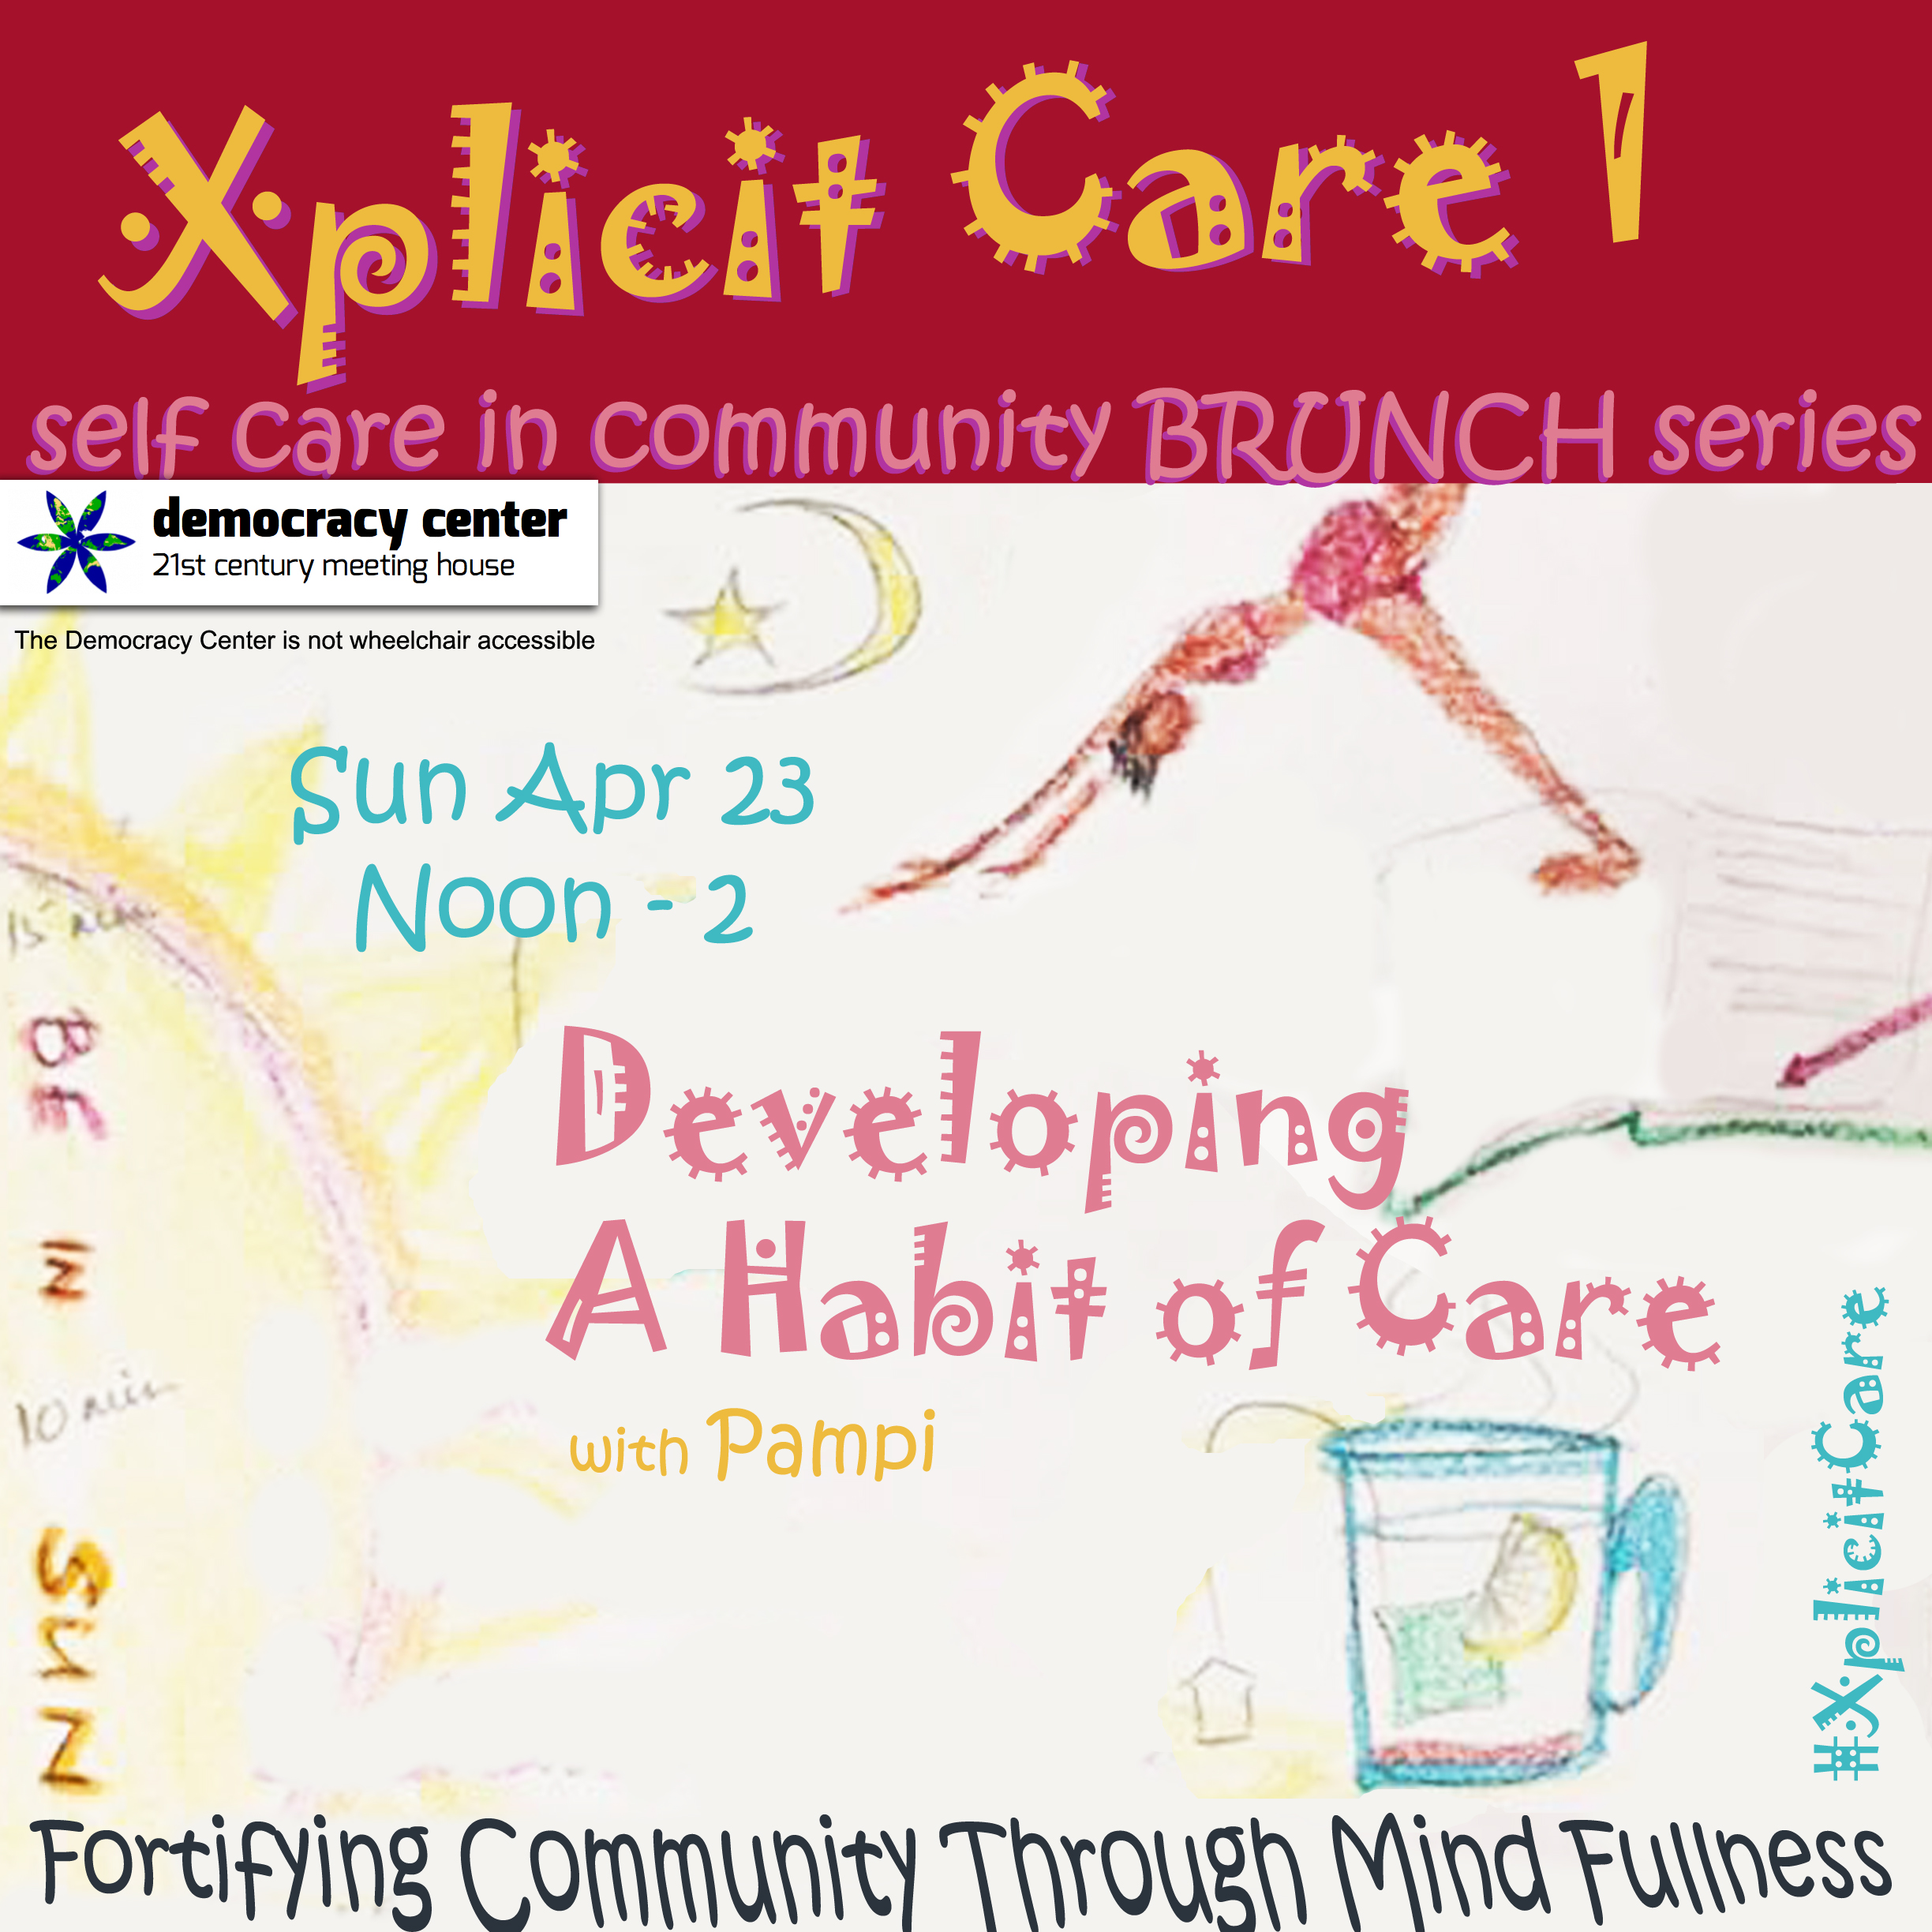 Testimonial for Xplicit Care: Developing a Habit of Care